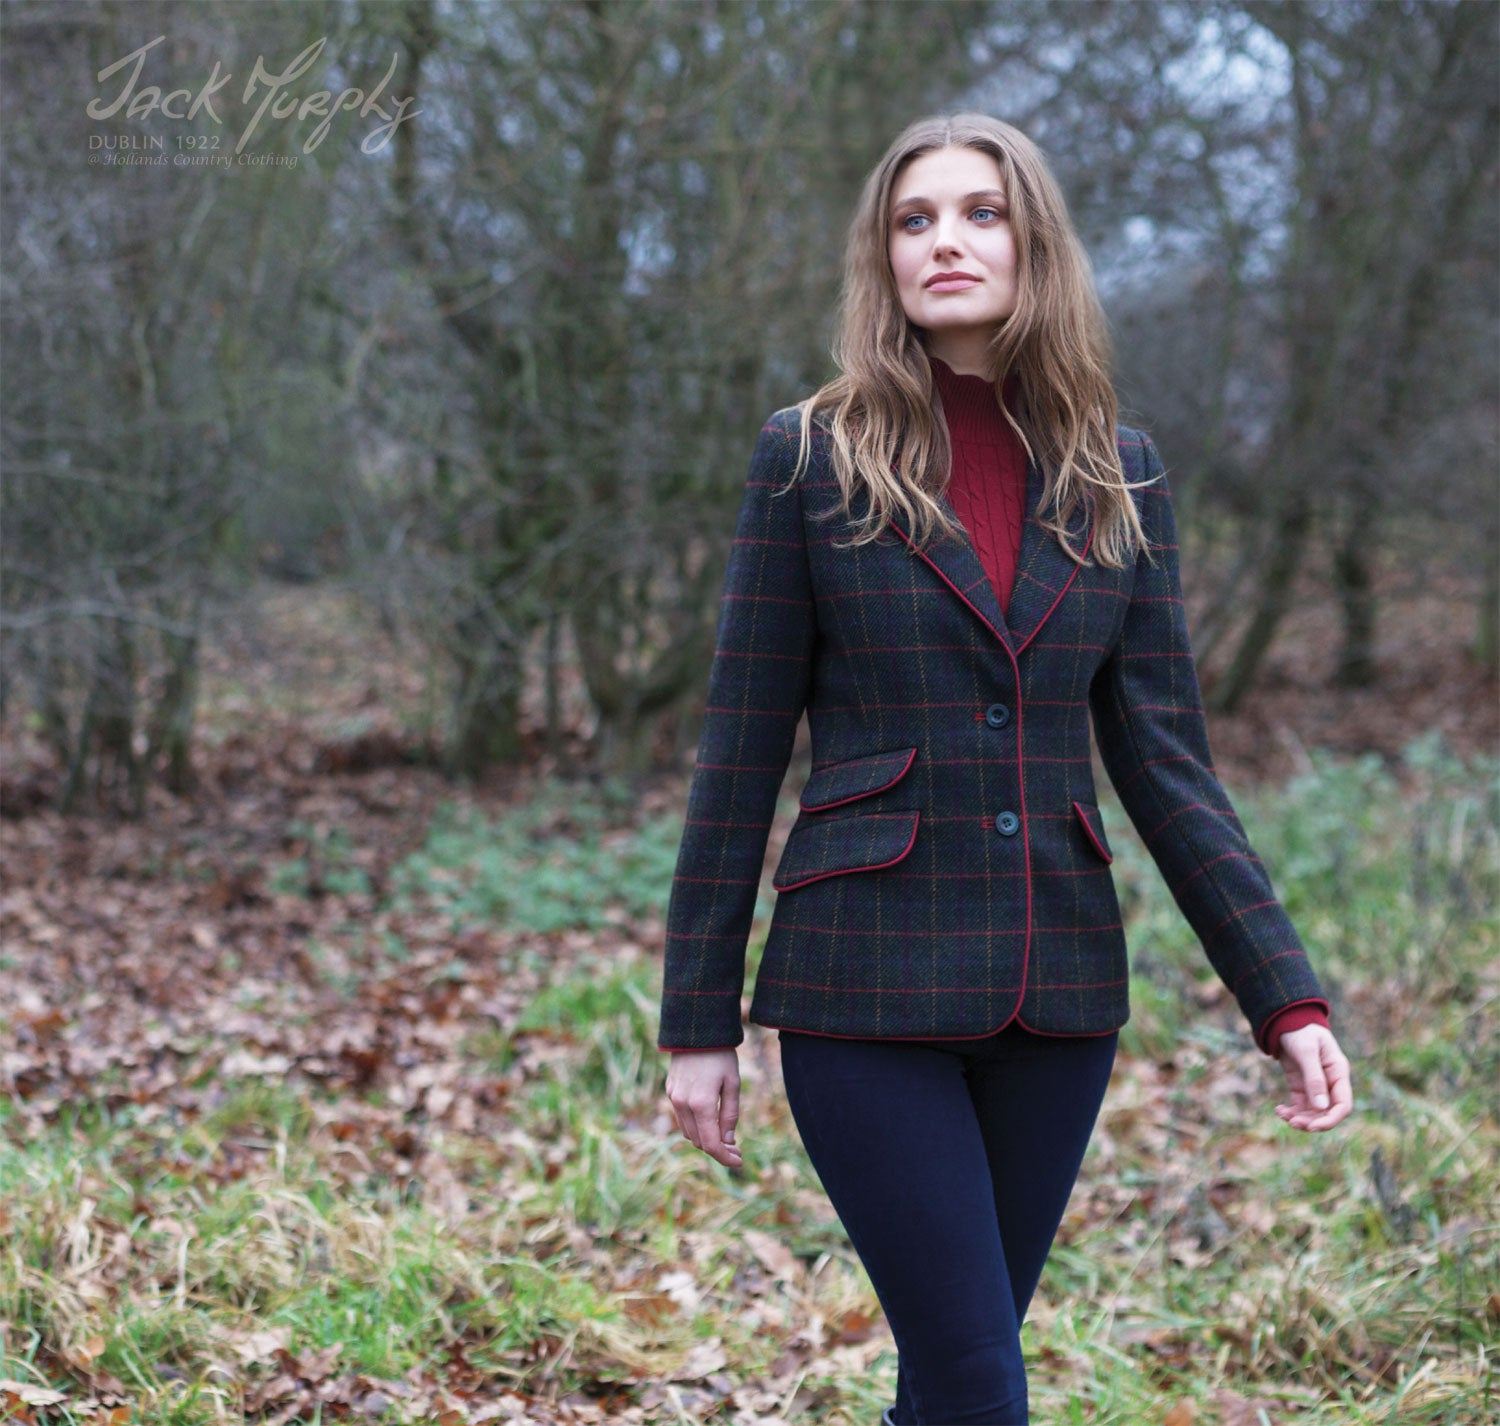 Blanche Tweed Jacket by Jack Murphy with Green and Red Check Tweed design